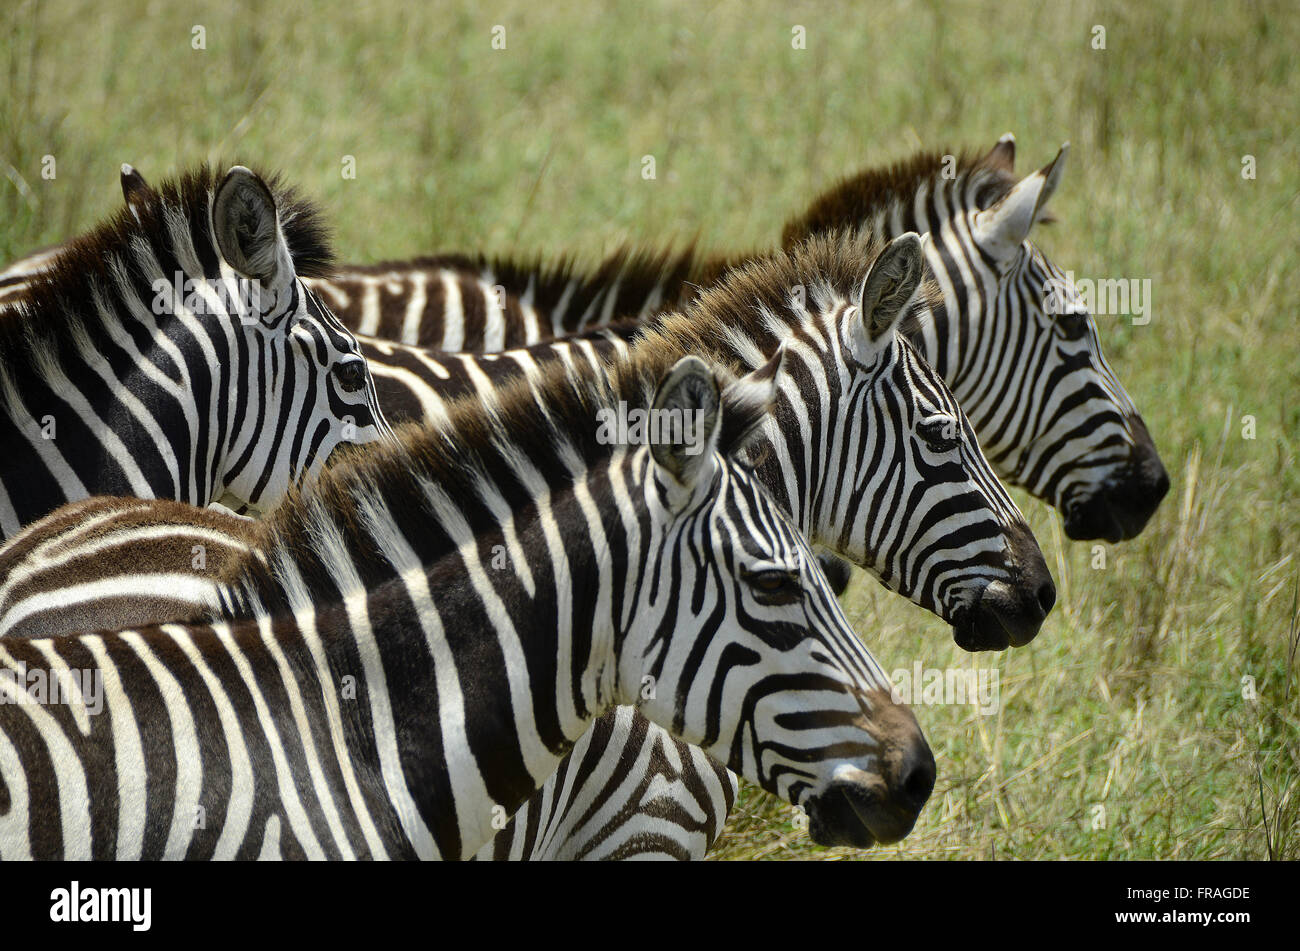 Zebras in the Masai Mara National Reserve - Stock Image